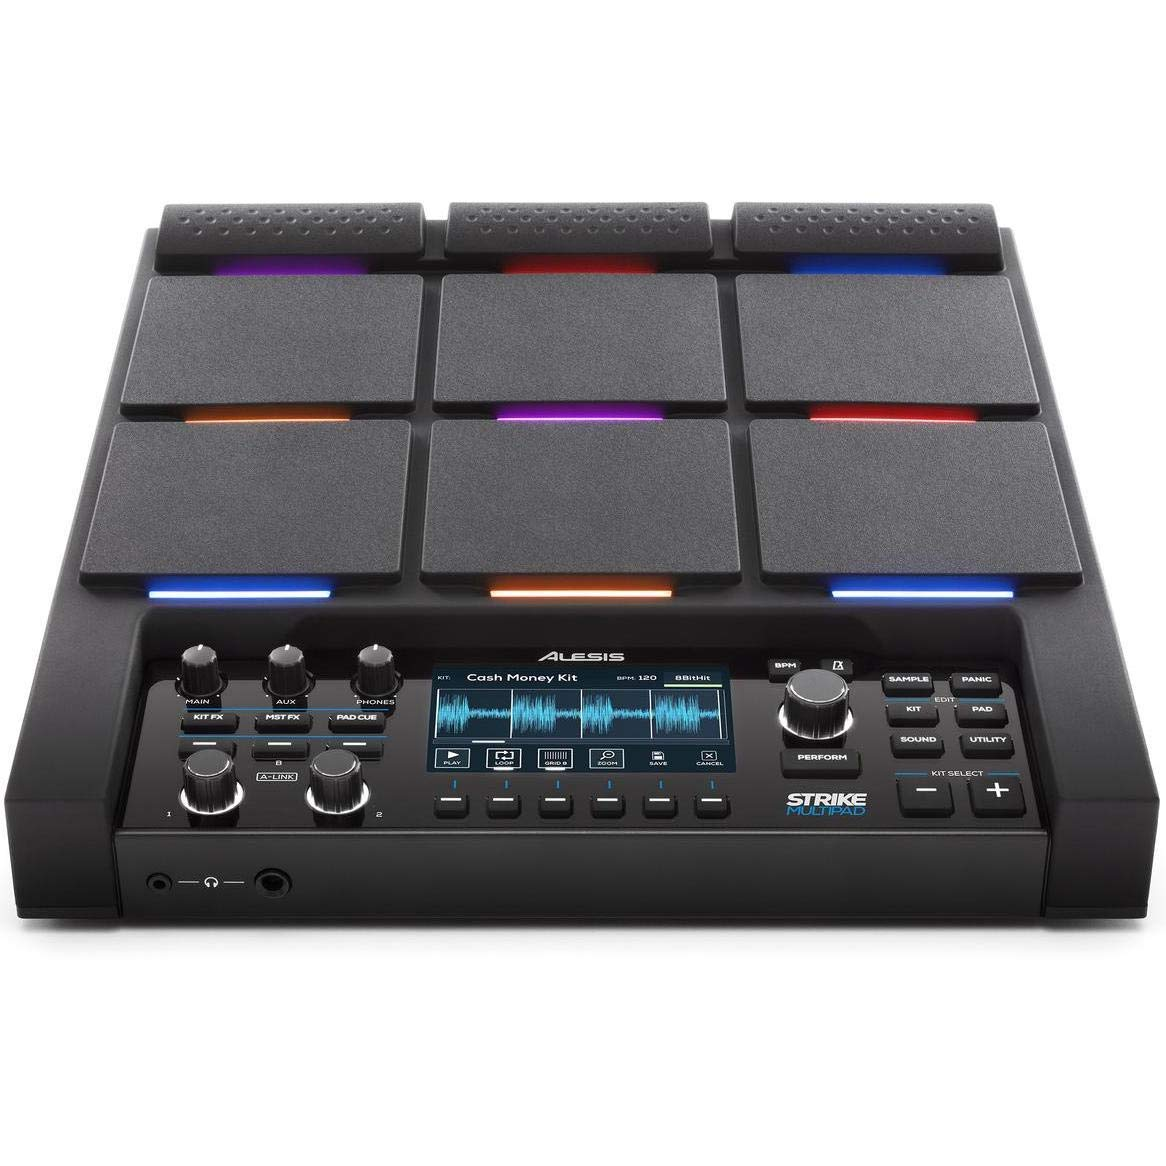 Strike MultiPad Percussion Pad with Sampler and Looper